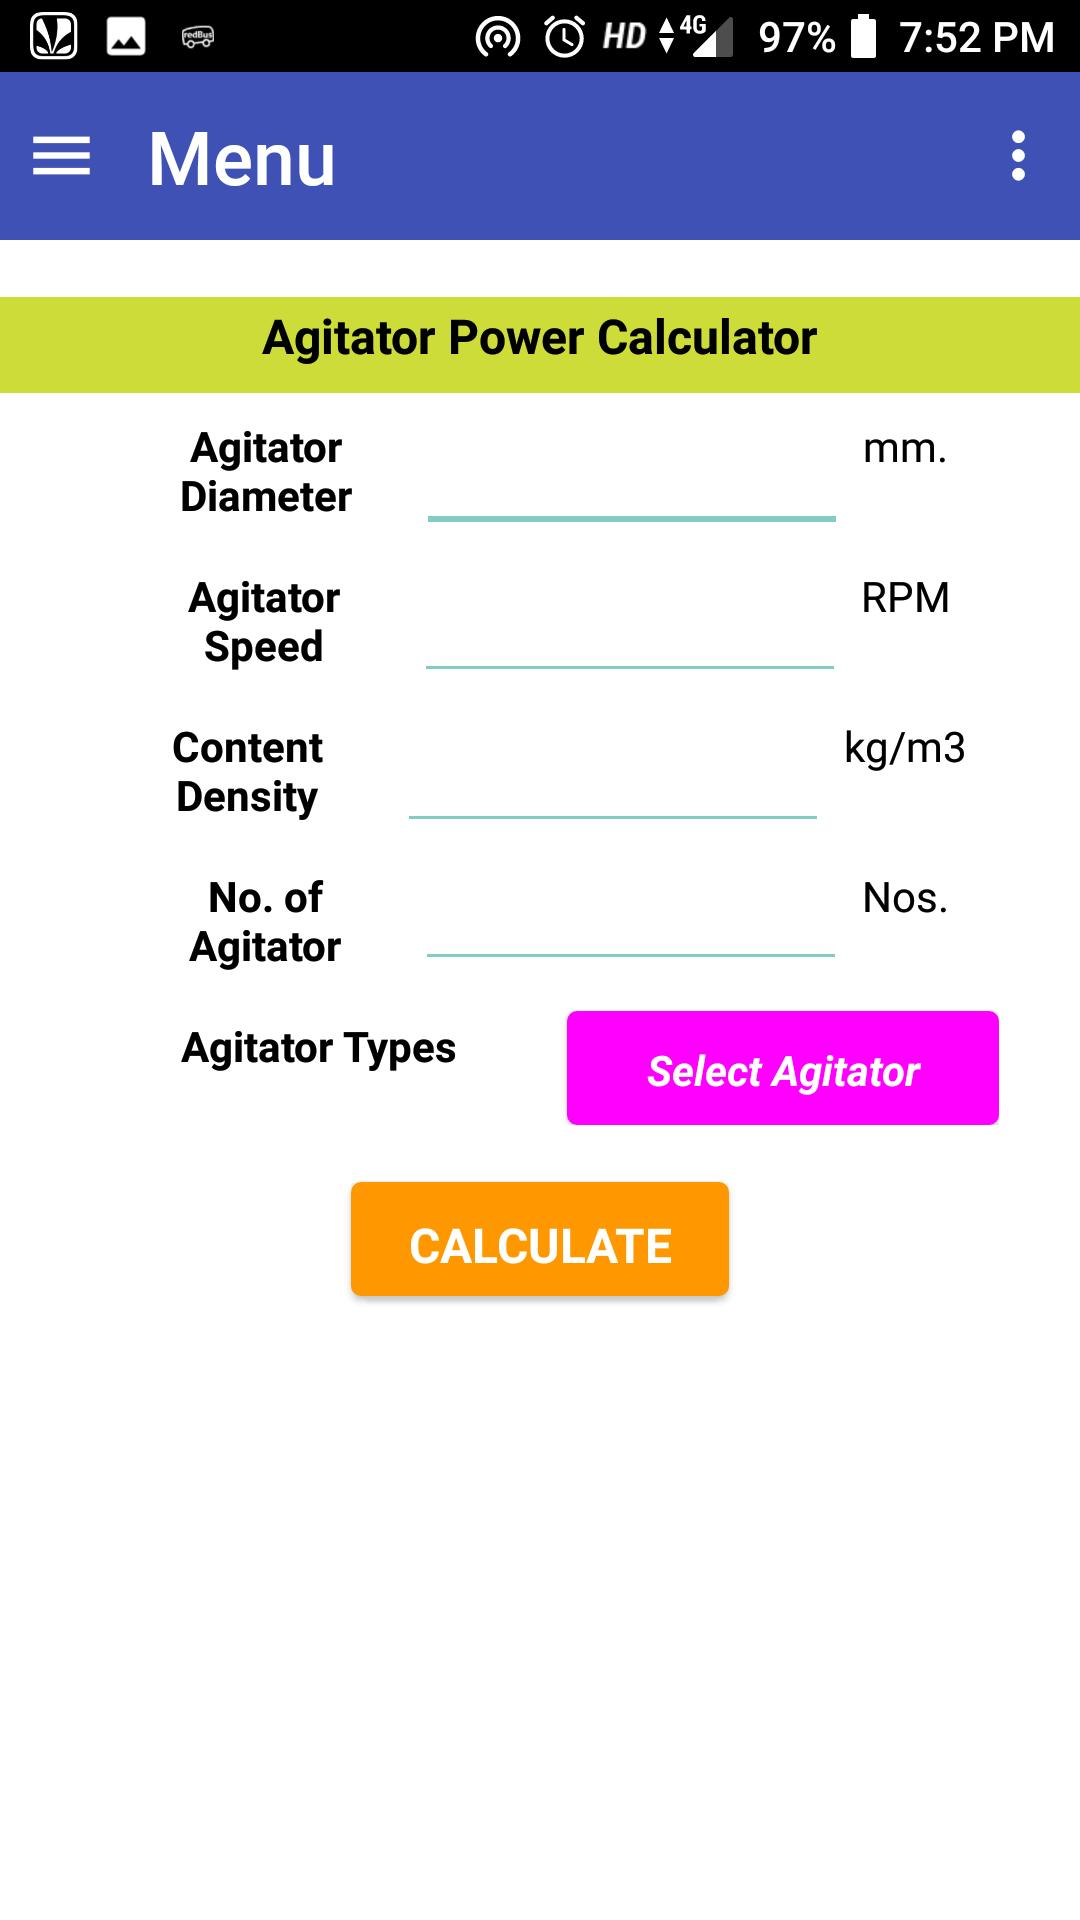 Agitator Power Calculator for Android - APK Download